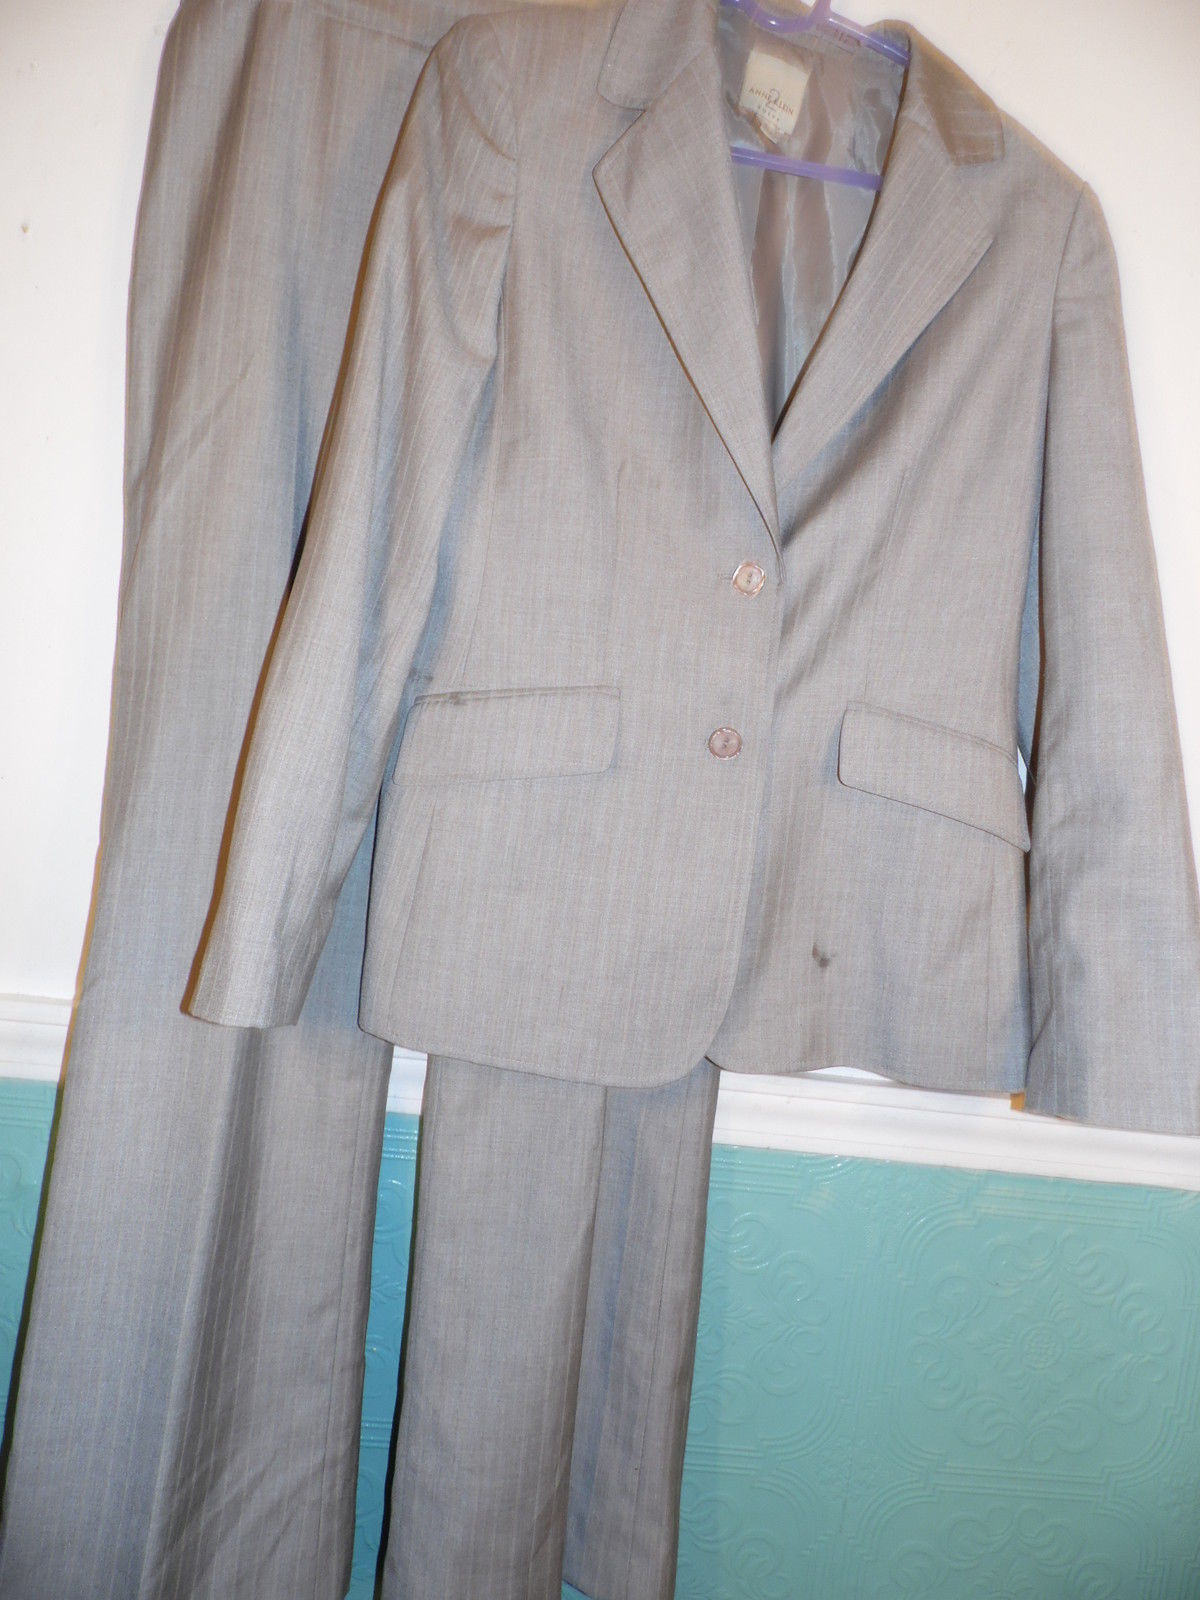 Primary image for Anne Klein 2 Size 8 Pant Suit Pin Stripe Brown Beige White Long Sleeve